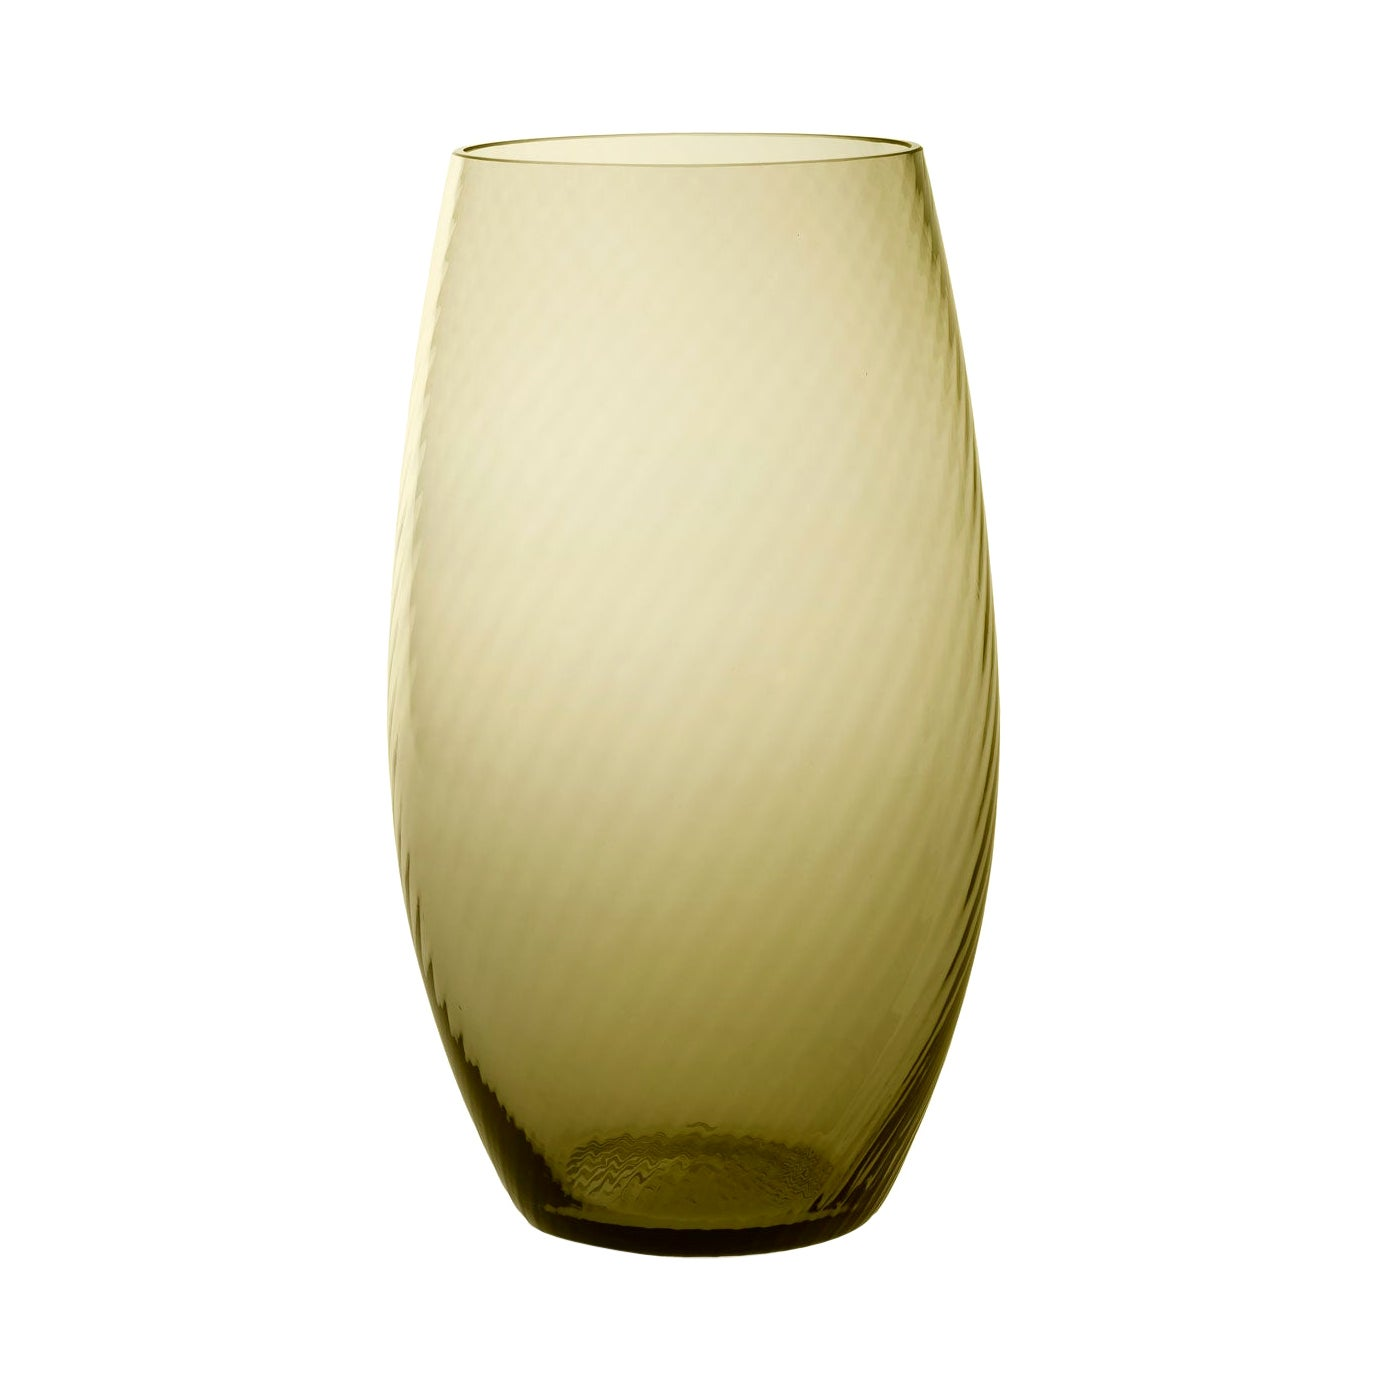 Vaso Ovale28, Vase Handcrafted Muranese Glass, Angora Twisted MUN by VG